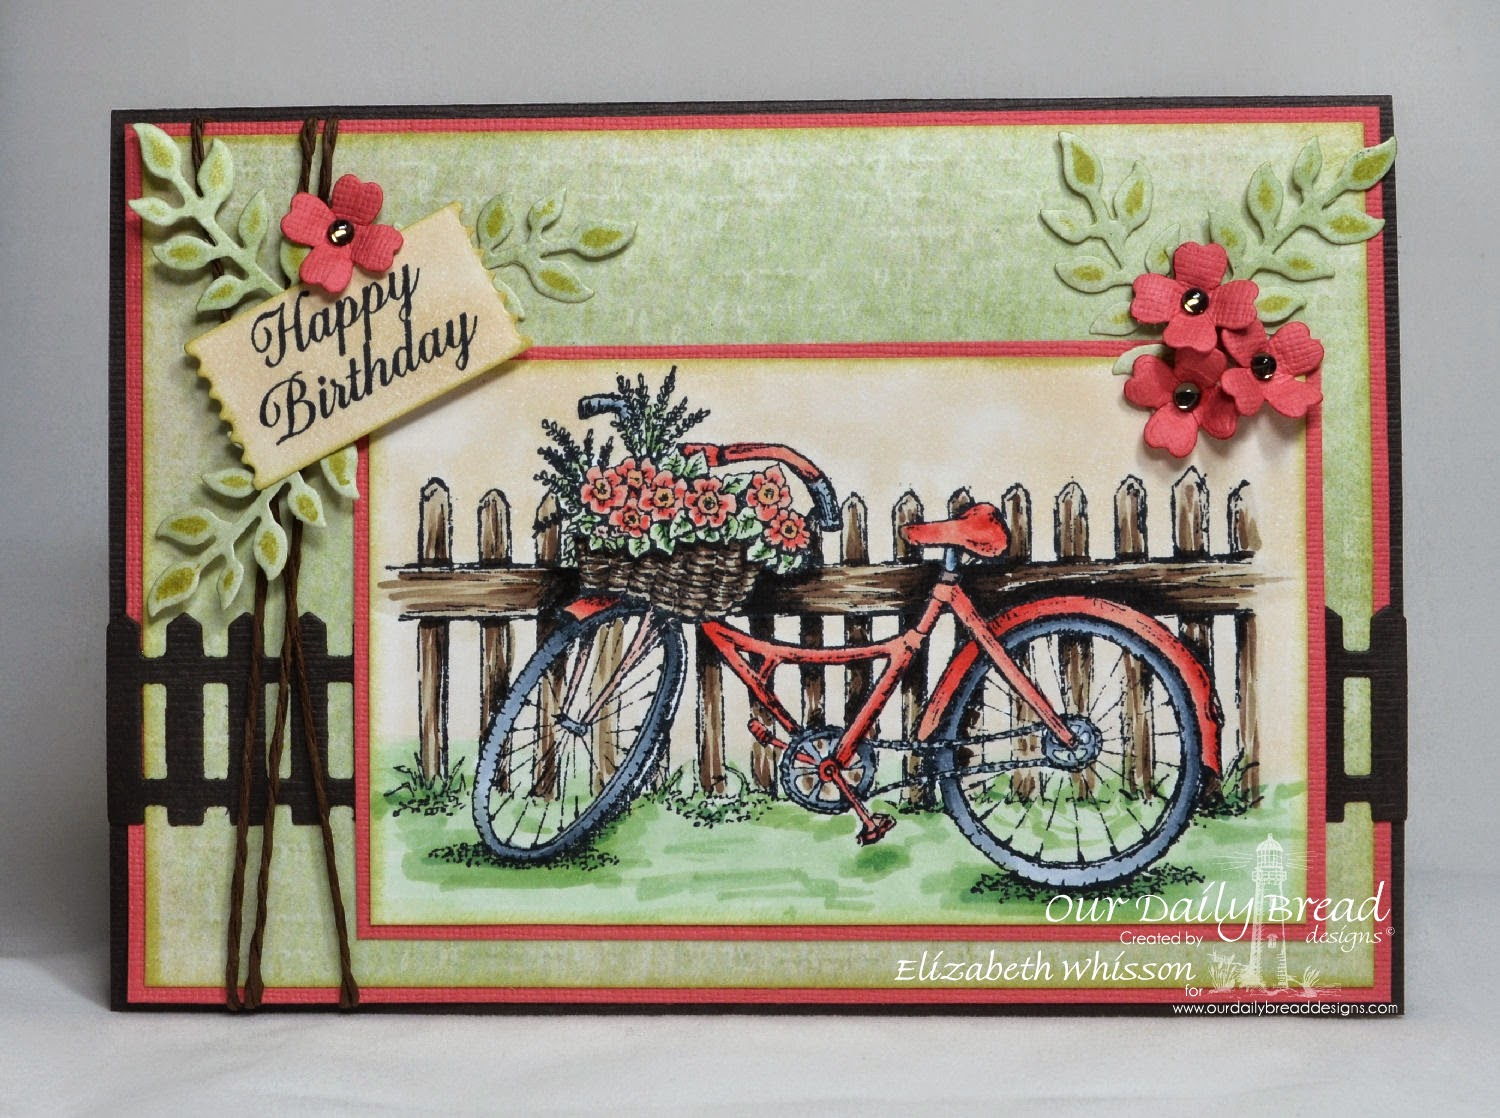 Our Daily Bread Designs, Bicycle, Ornate Border Sentiments, ODBD Fence Die, ODBD Mini Tag Dies, ODBD Ornamental Crosses Dies, ODBD Fancy Foliage Dies, Designed by Elizabeth Whisson, Copics, happy birthday, handmade card,